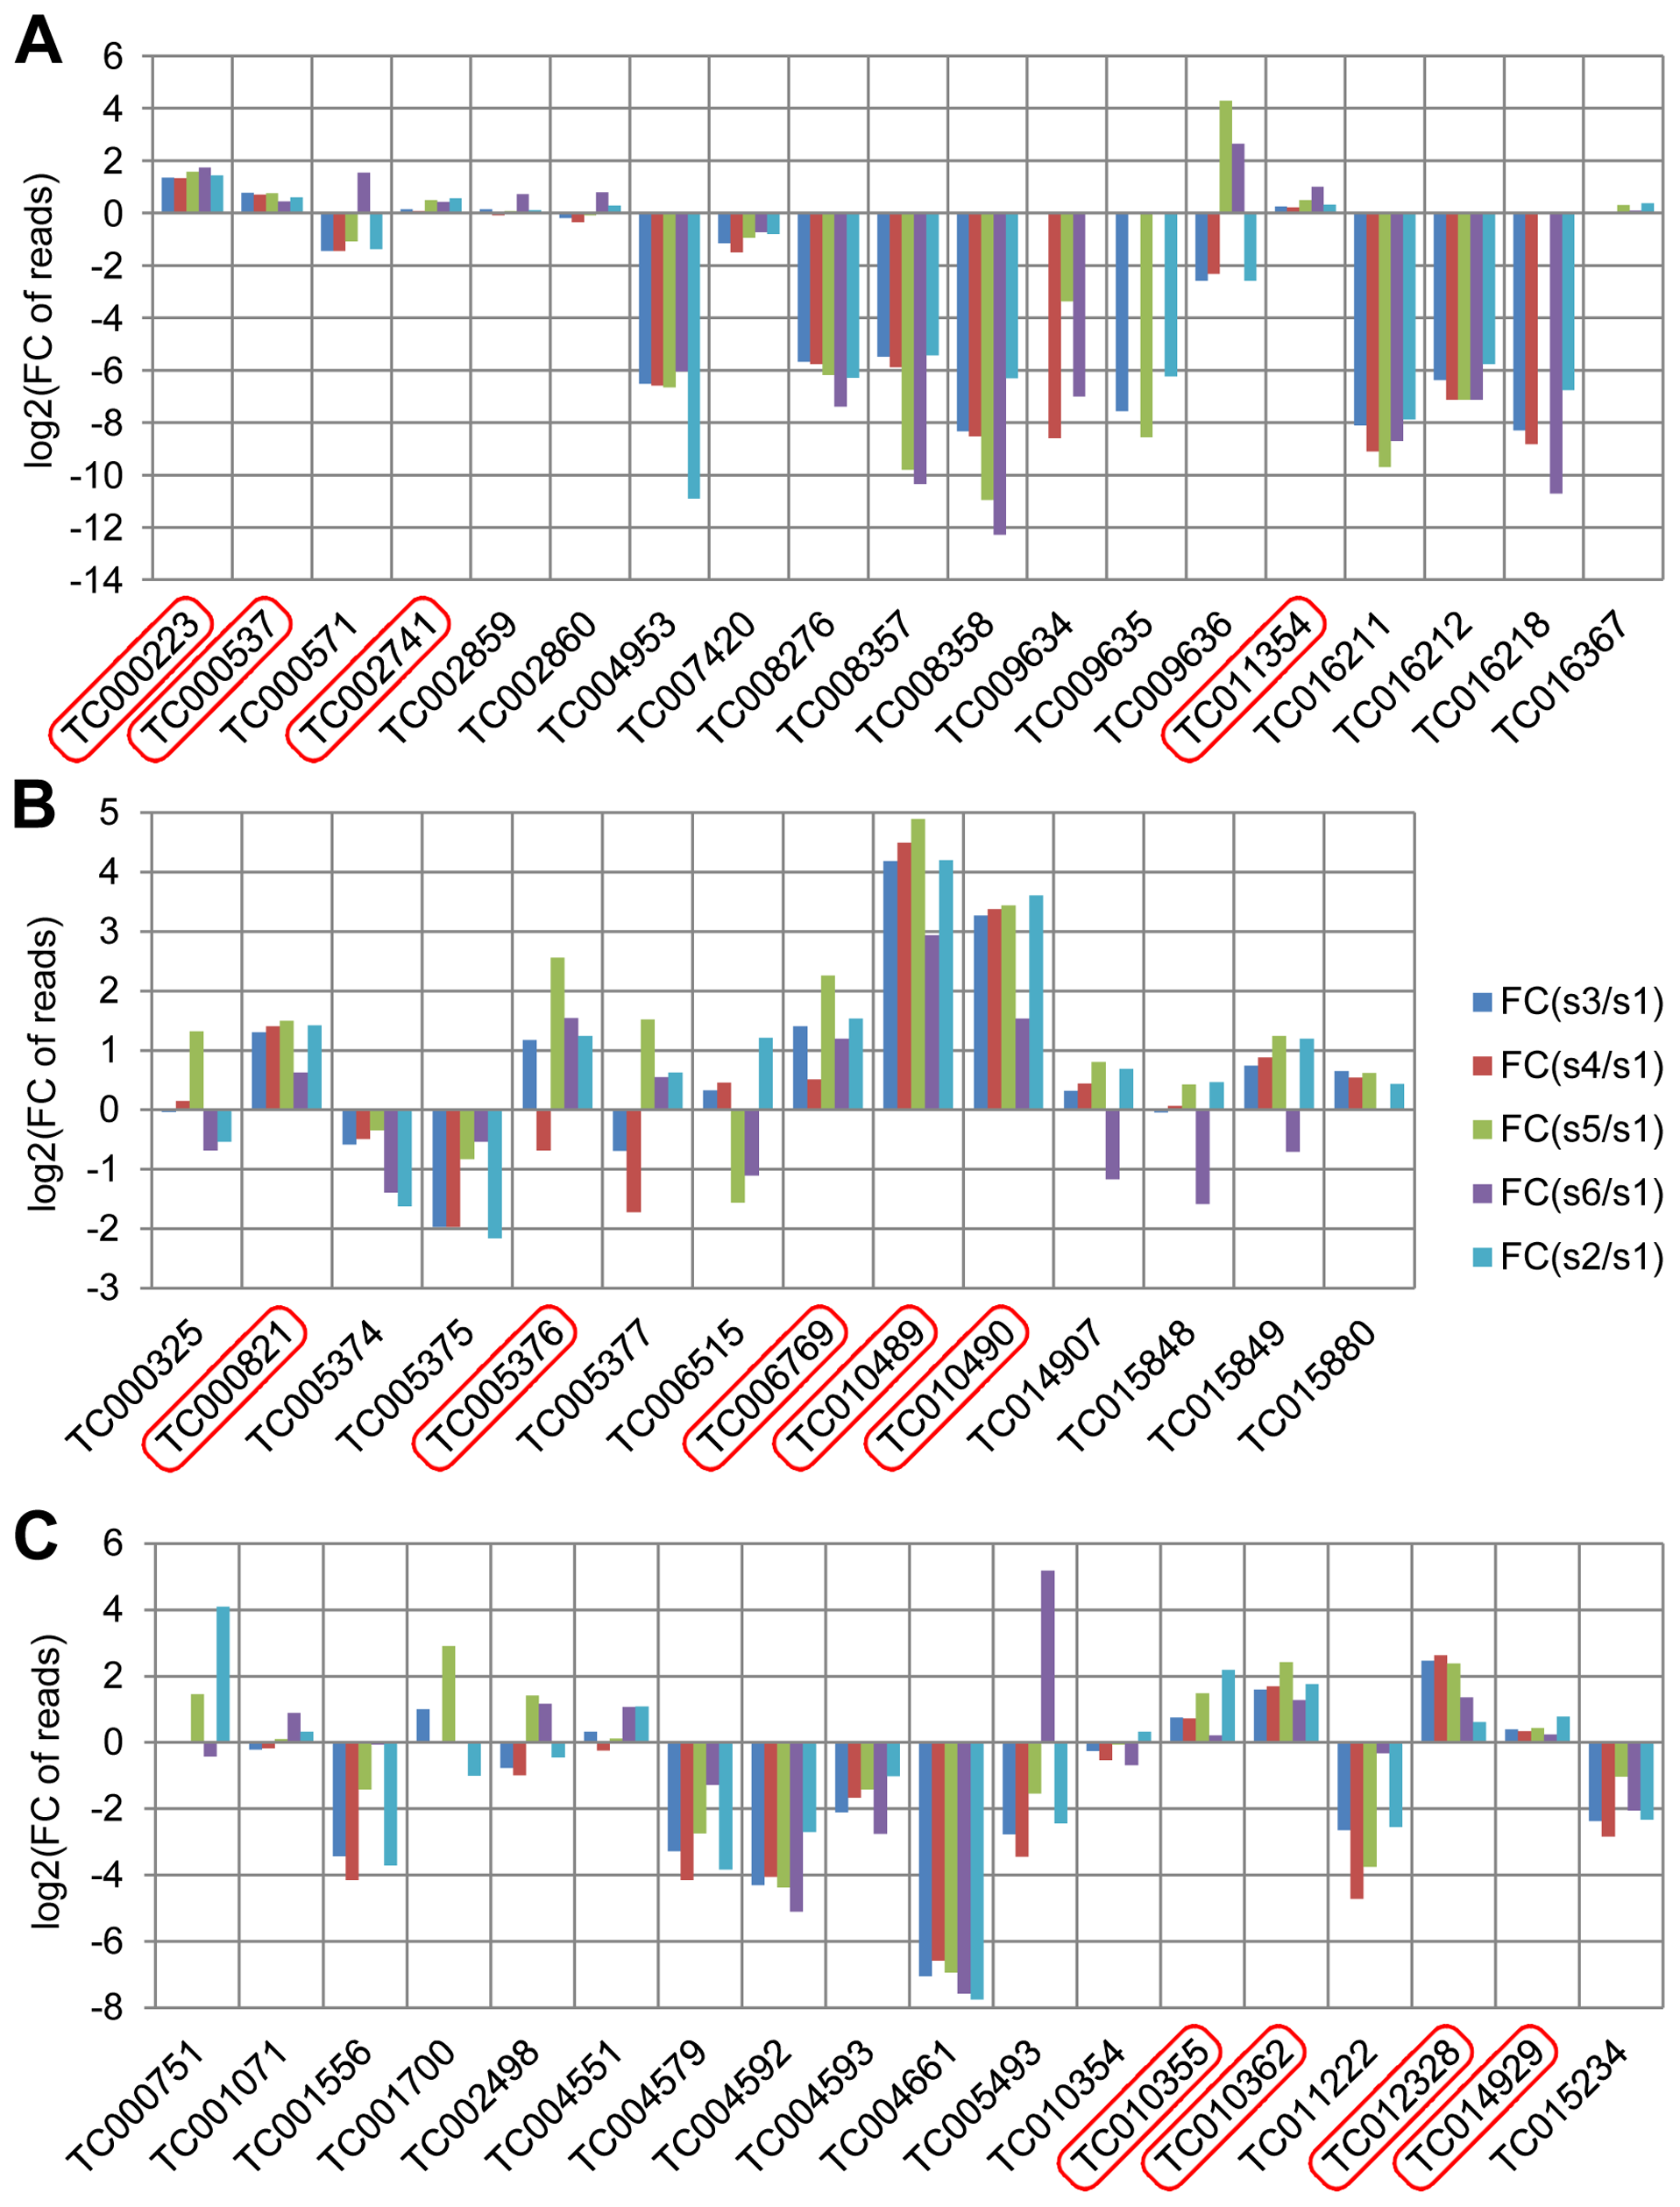 Annotated quinone synthesis-related genes and their relative gland transcriptome expression levels.